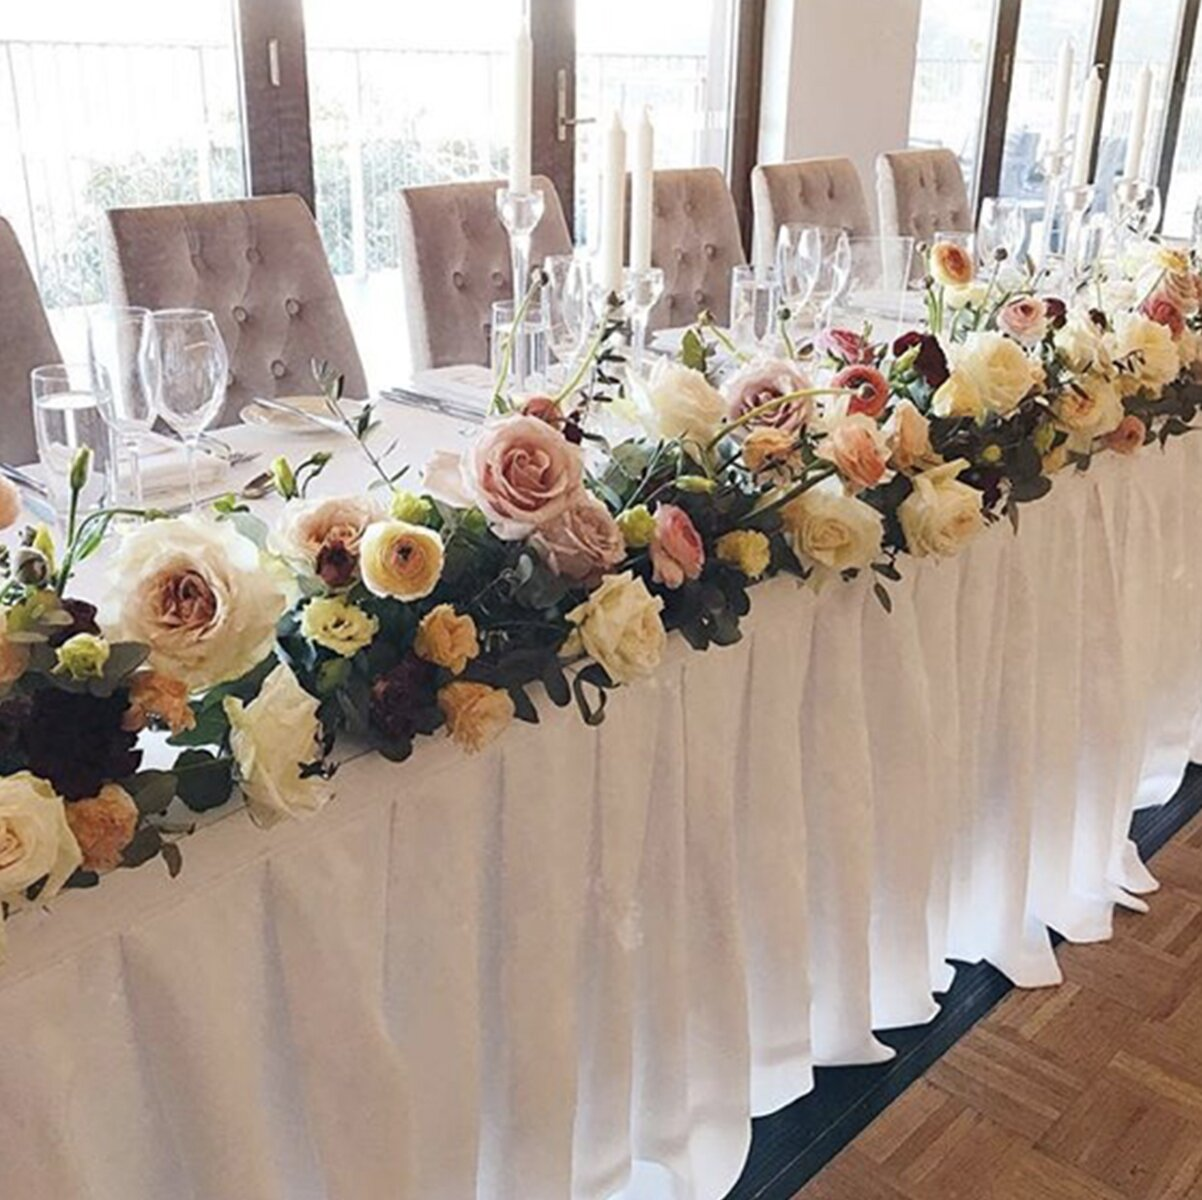 sydney wedding flowers prices affordable bridal table